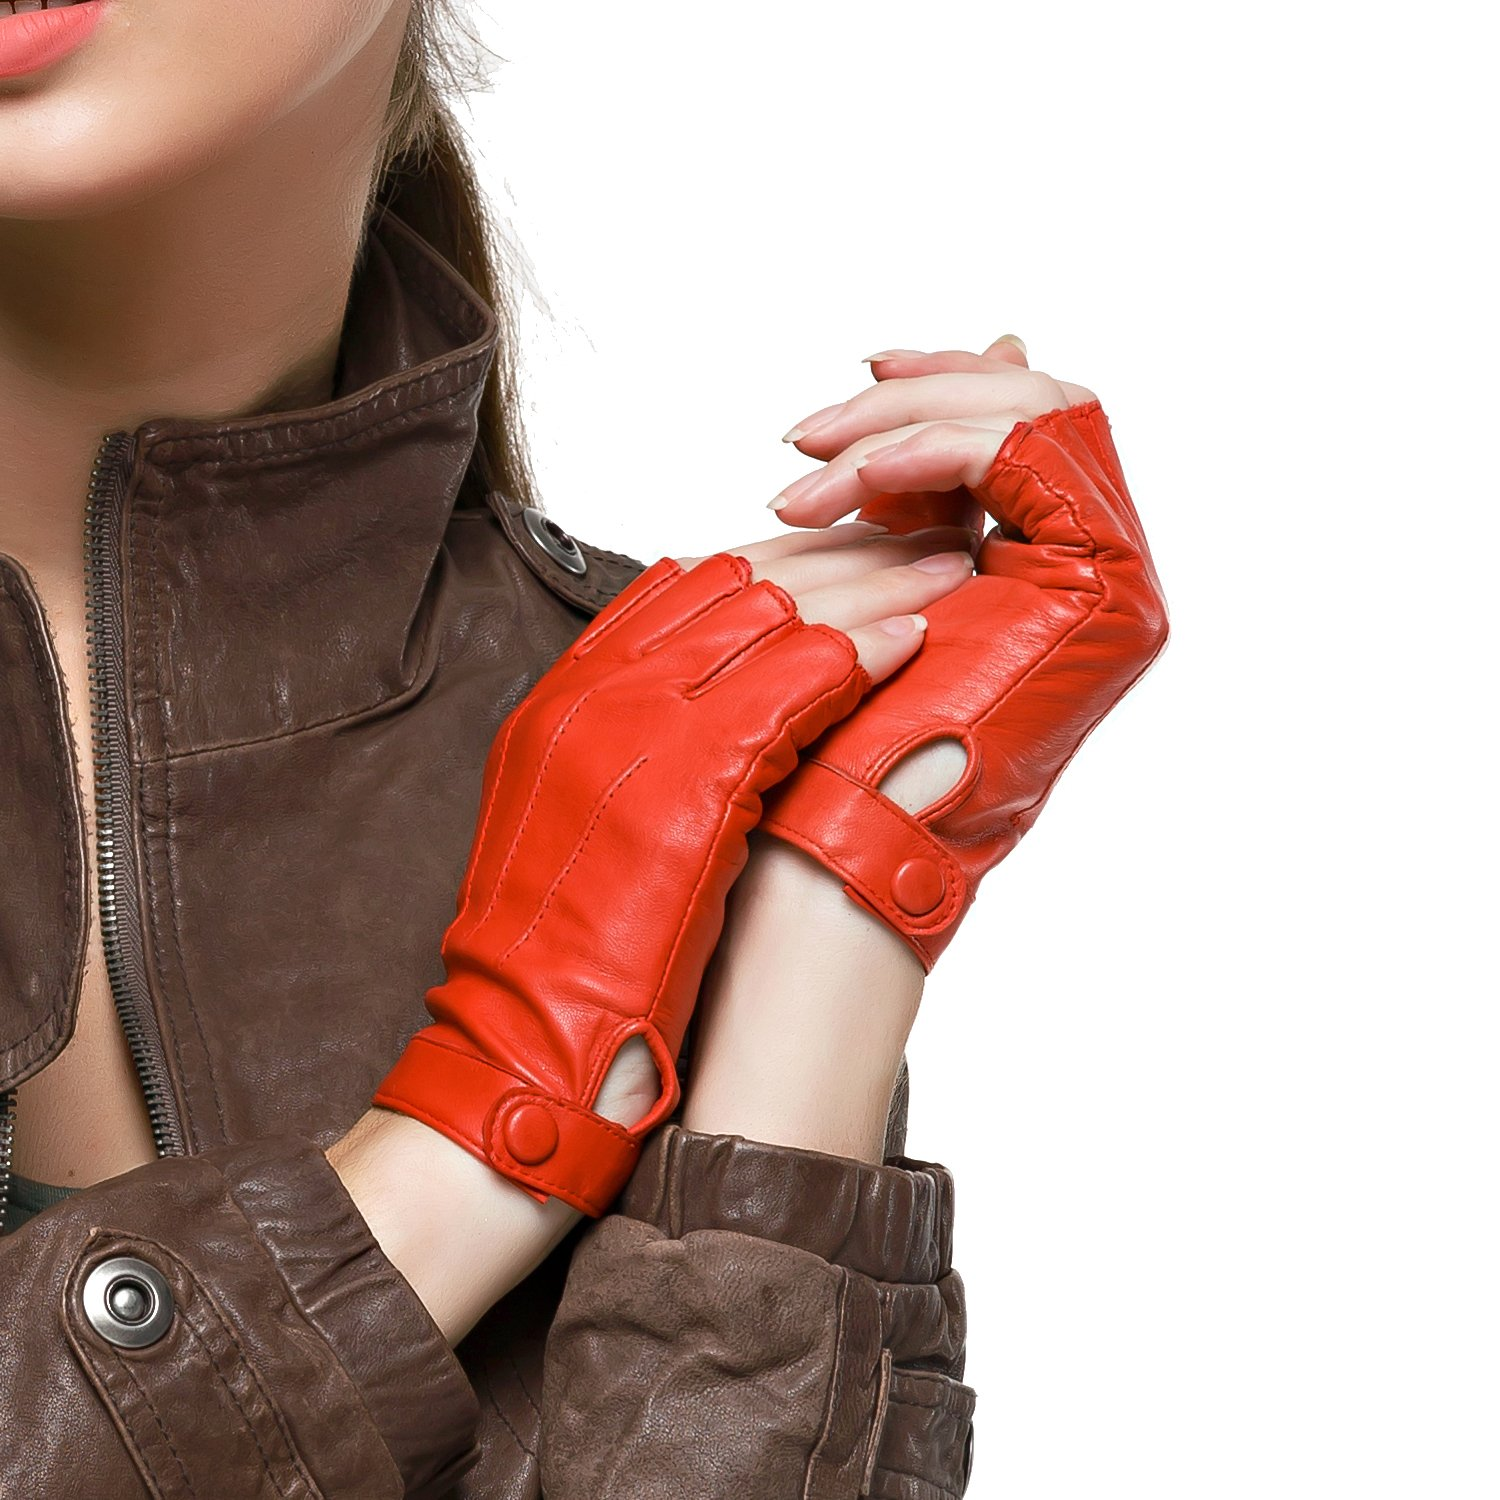 Nappaglo Women's Driving Leather Gloves Nappa Leather Half Finger Fingerless Gloves Fitness Lined Gloves for Driving Cycling Motorcycling DBE201